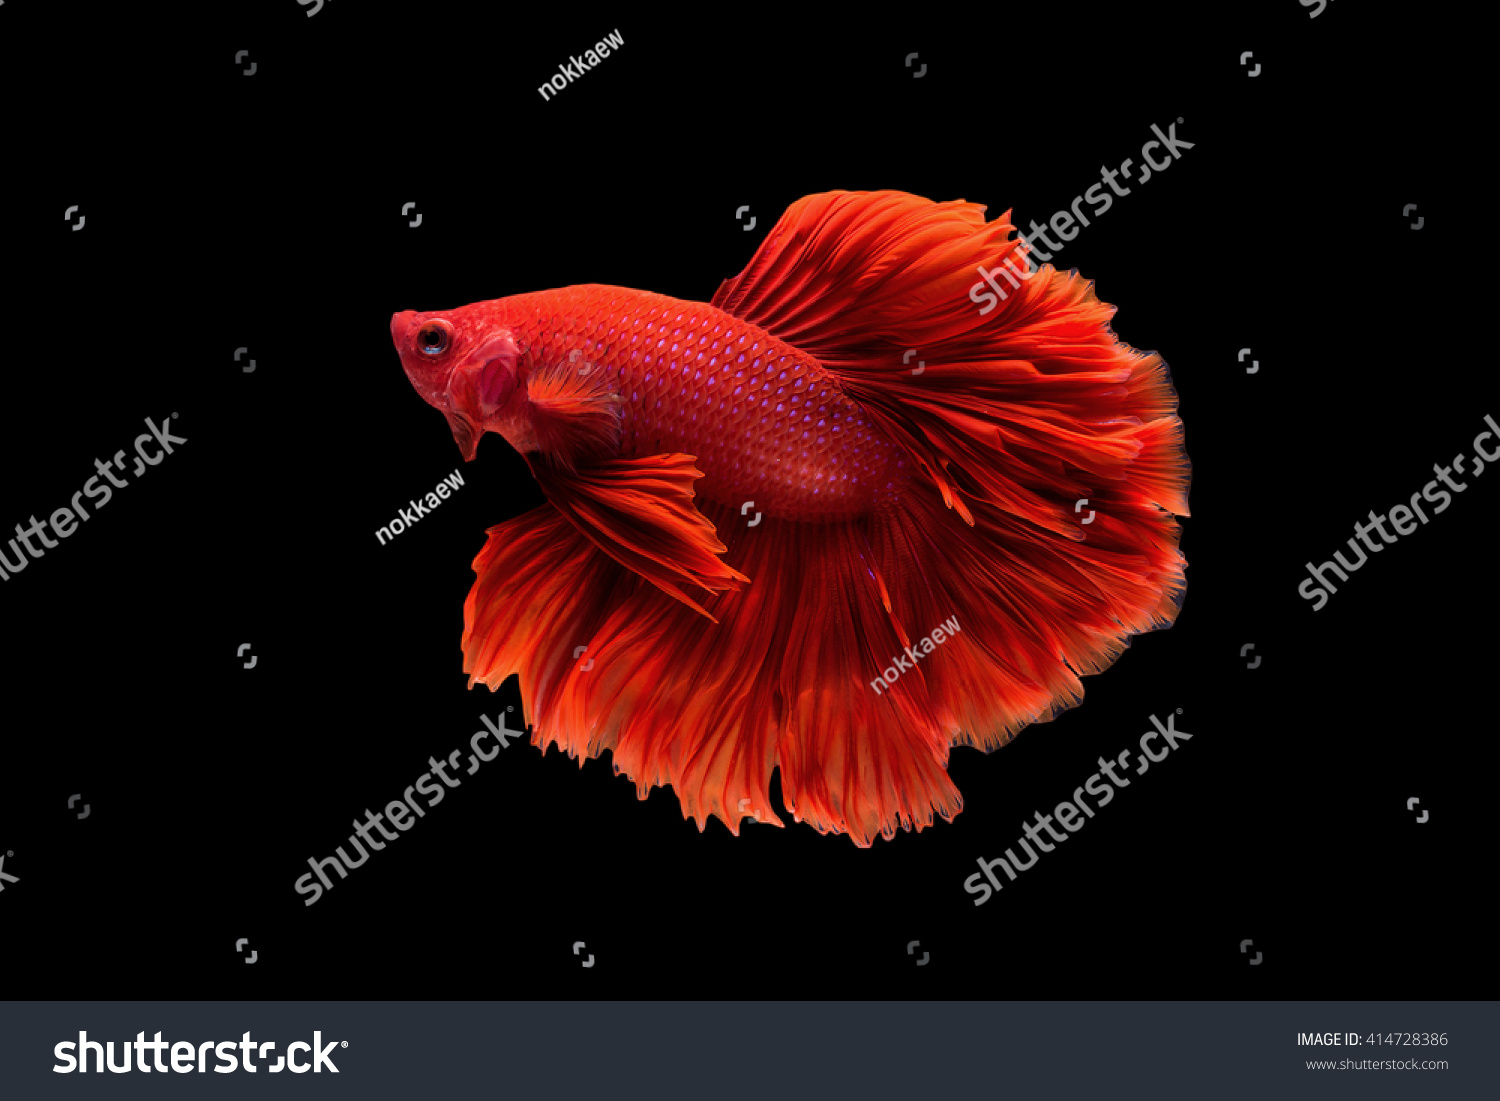 Red Halfmoon Betta Capture Moving Moment Stock Photo 414728386 ...